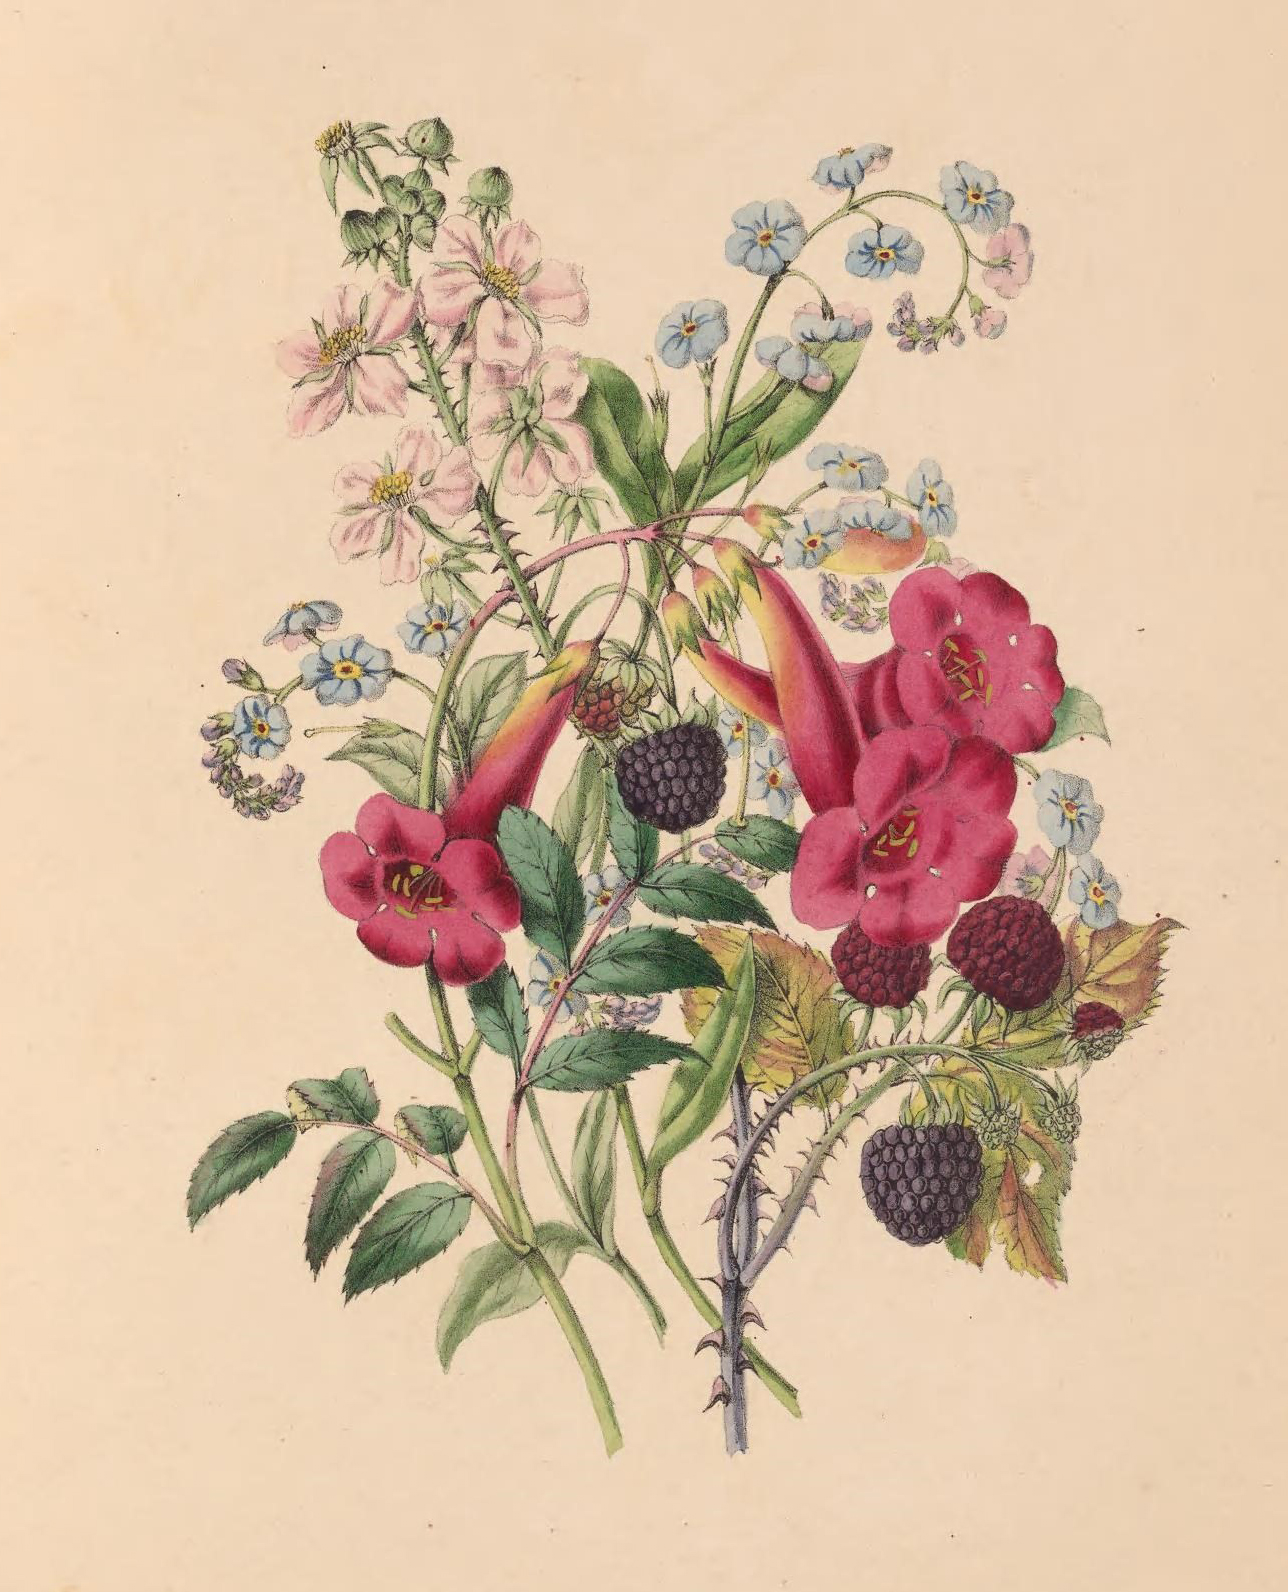 Trumpet.-flower, Forget-Me-Not, and Raspberry.